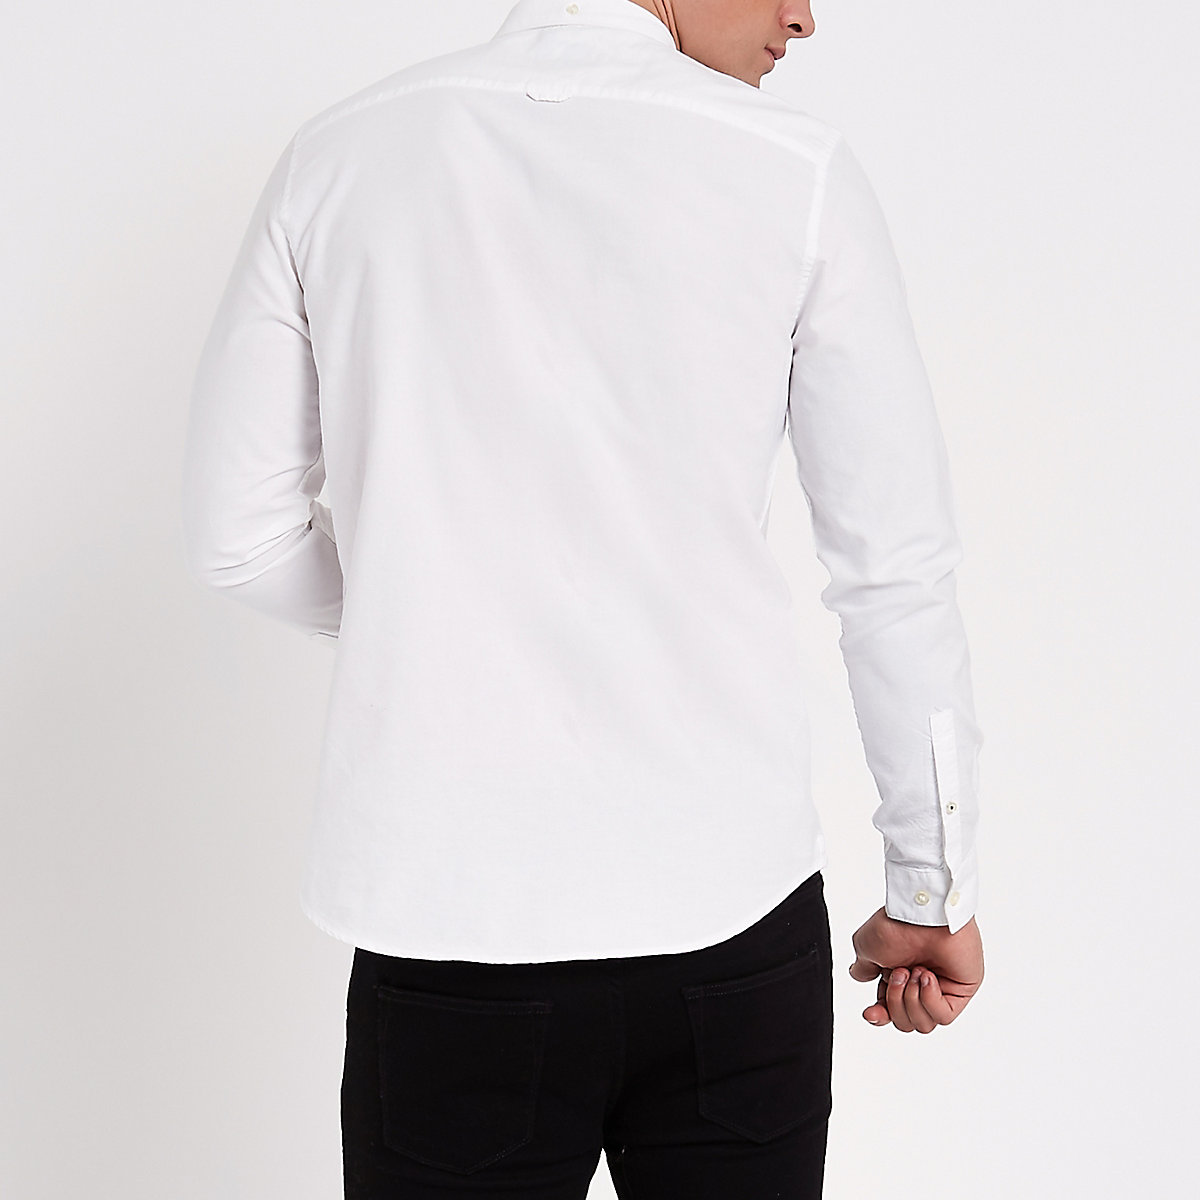 ... White wasp embroidered pocket Oxford shirt ...